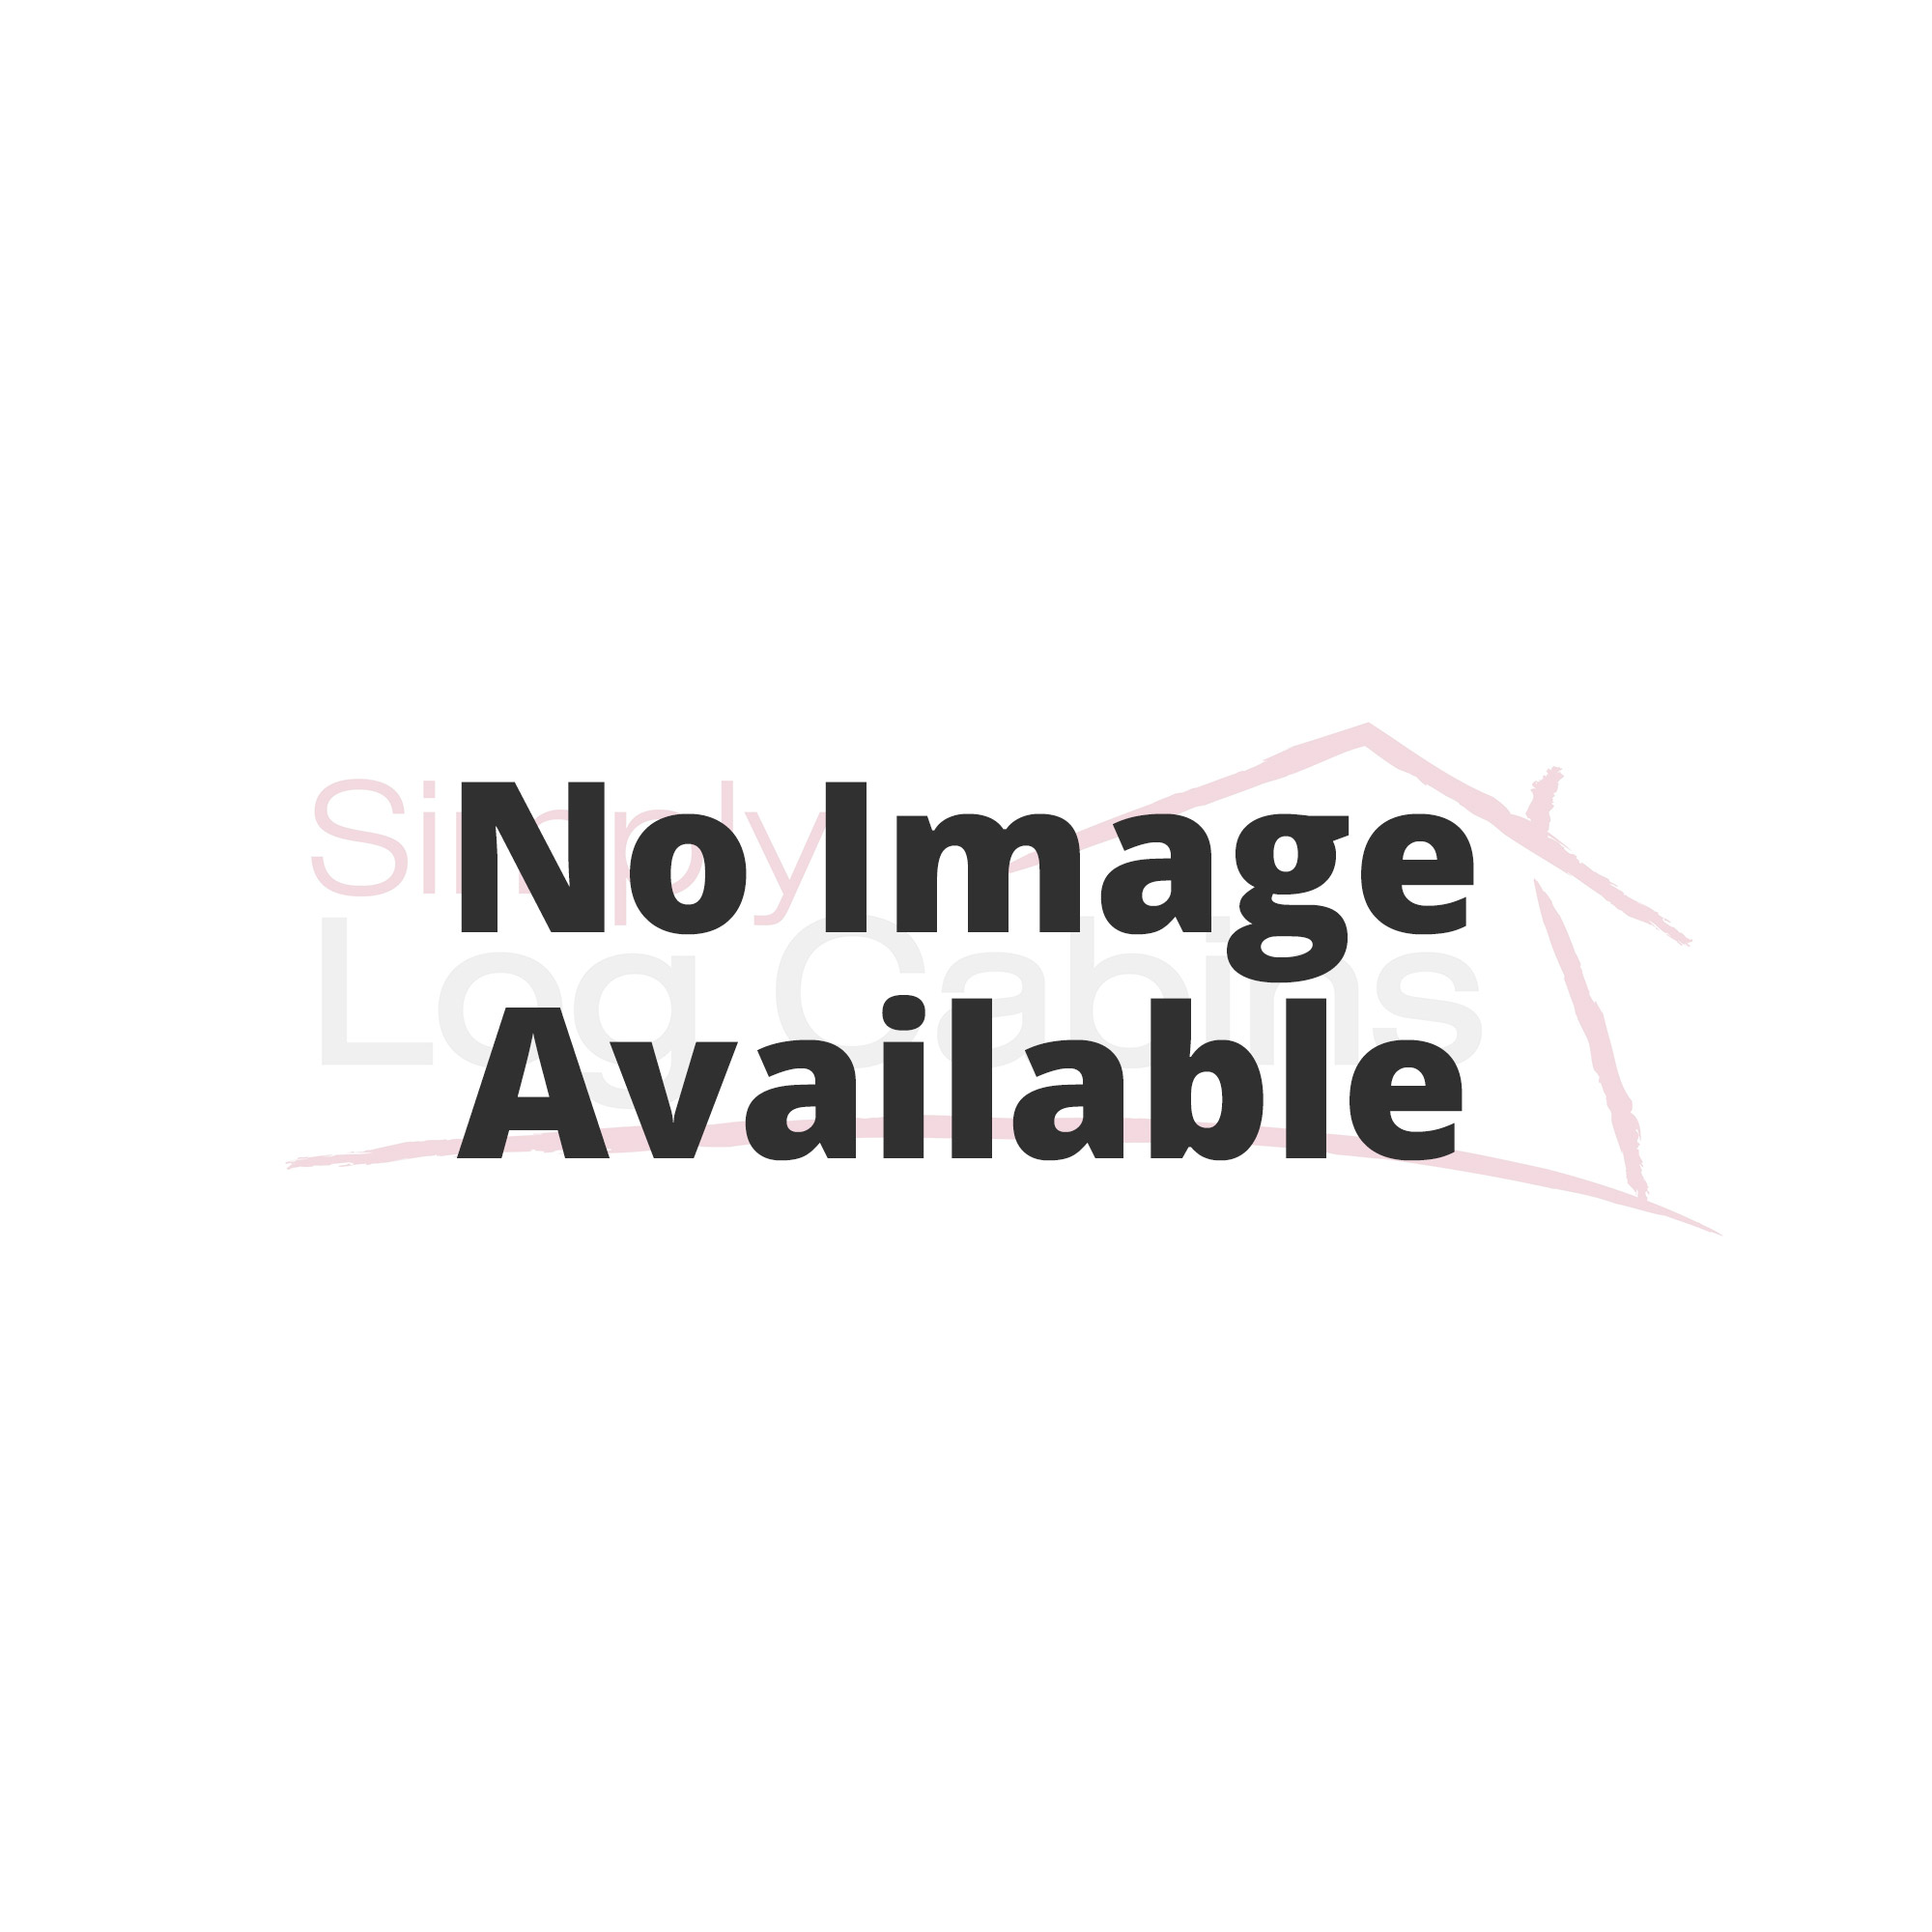 Jagram Chopin Gazebo with Tiled Roof